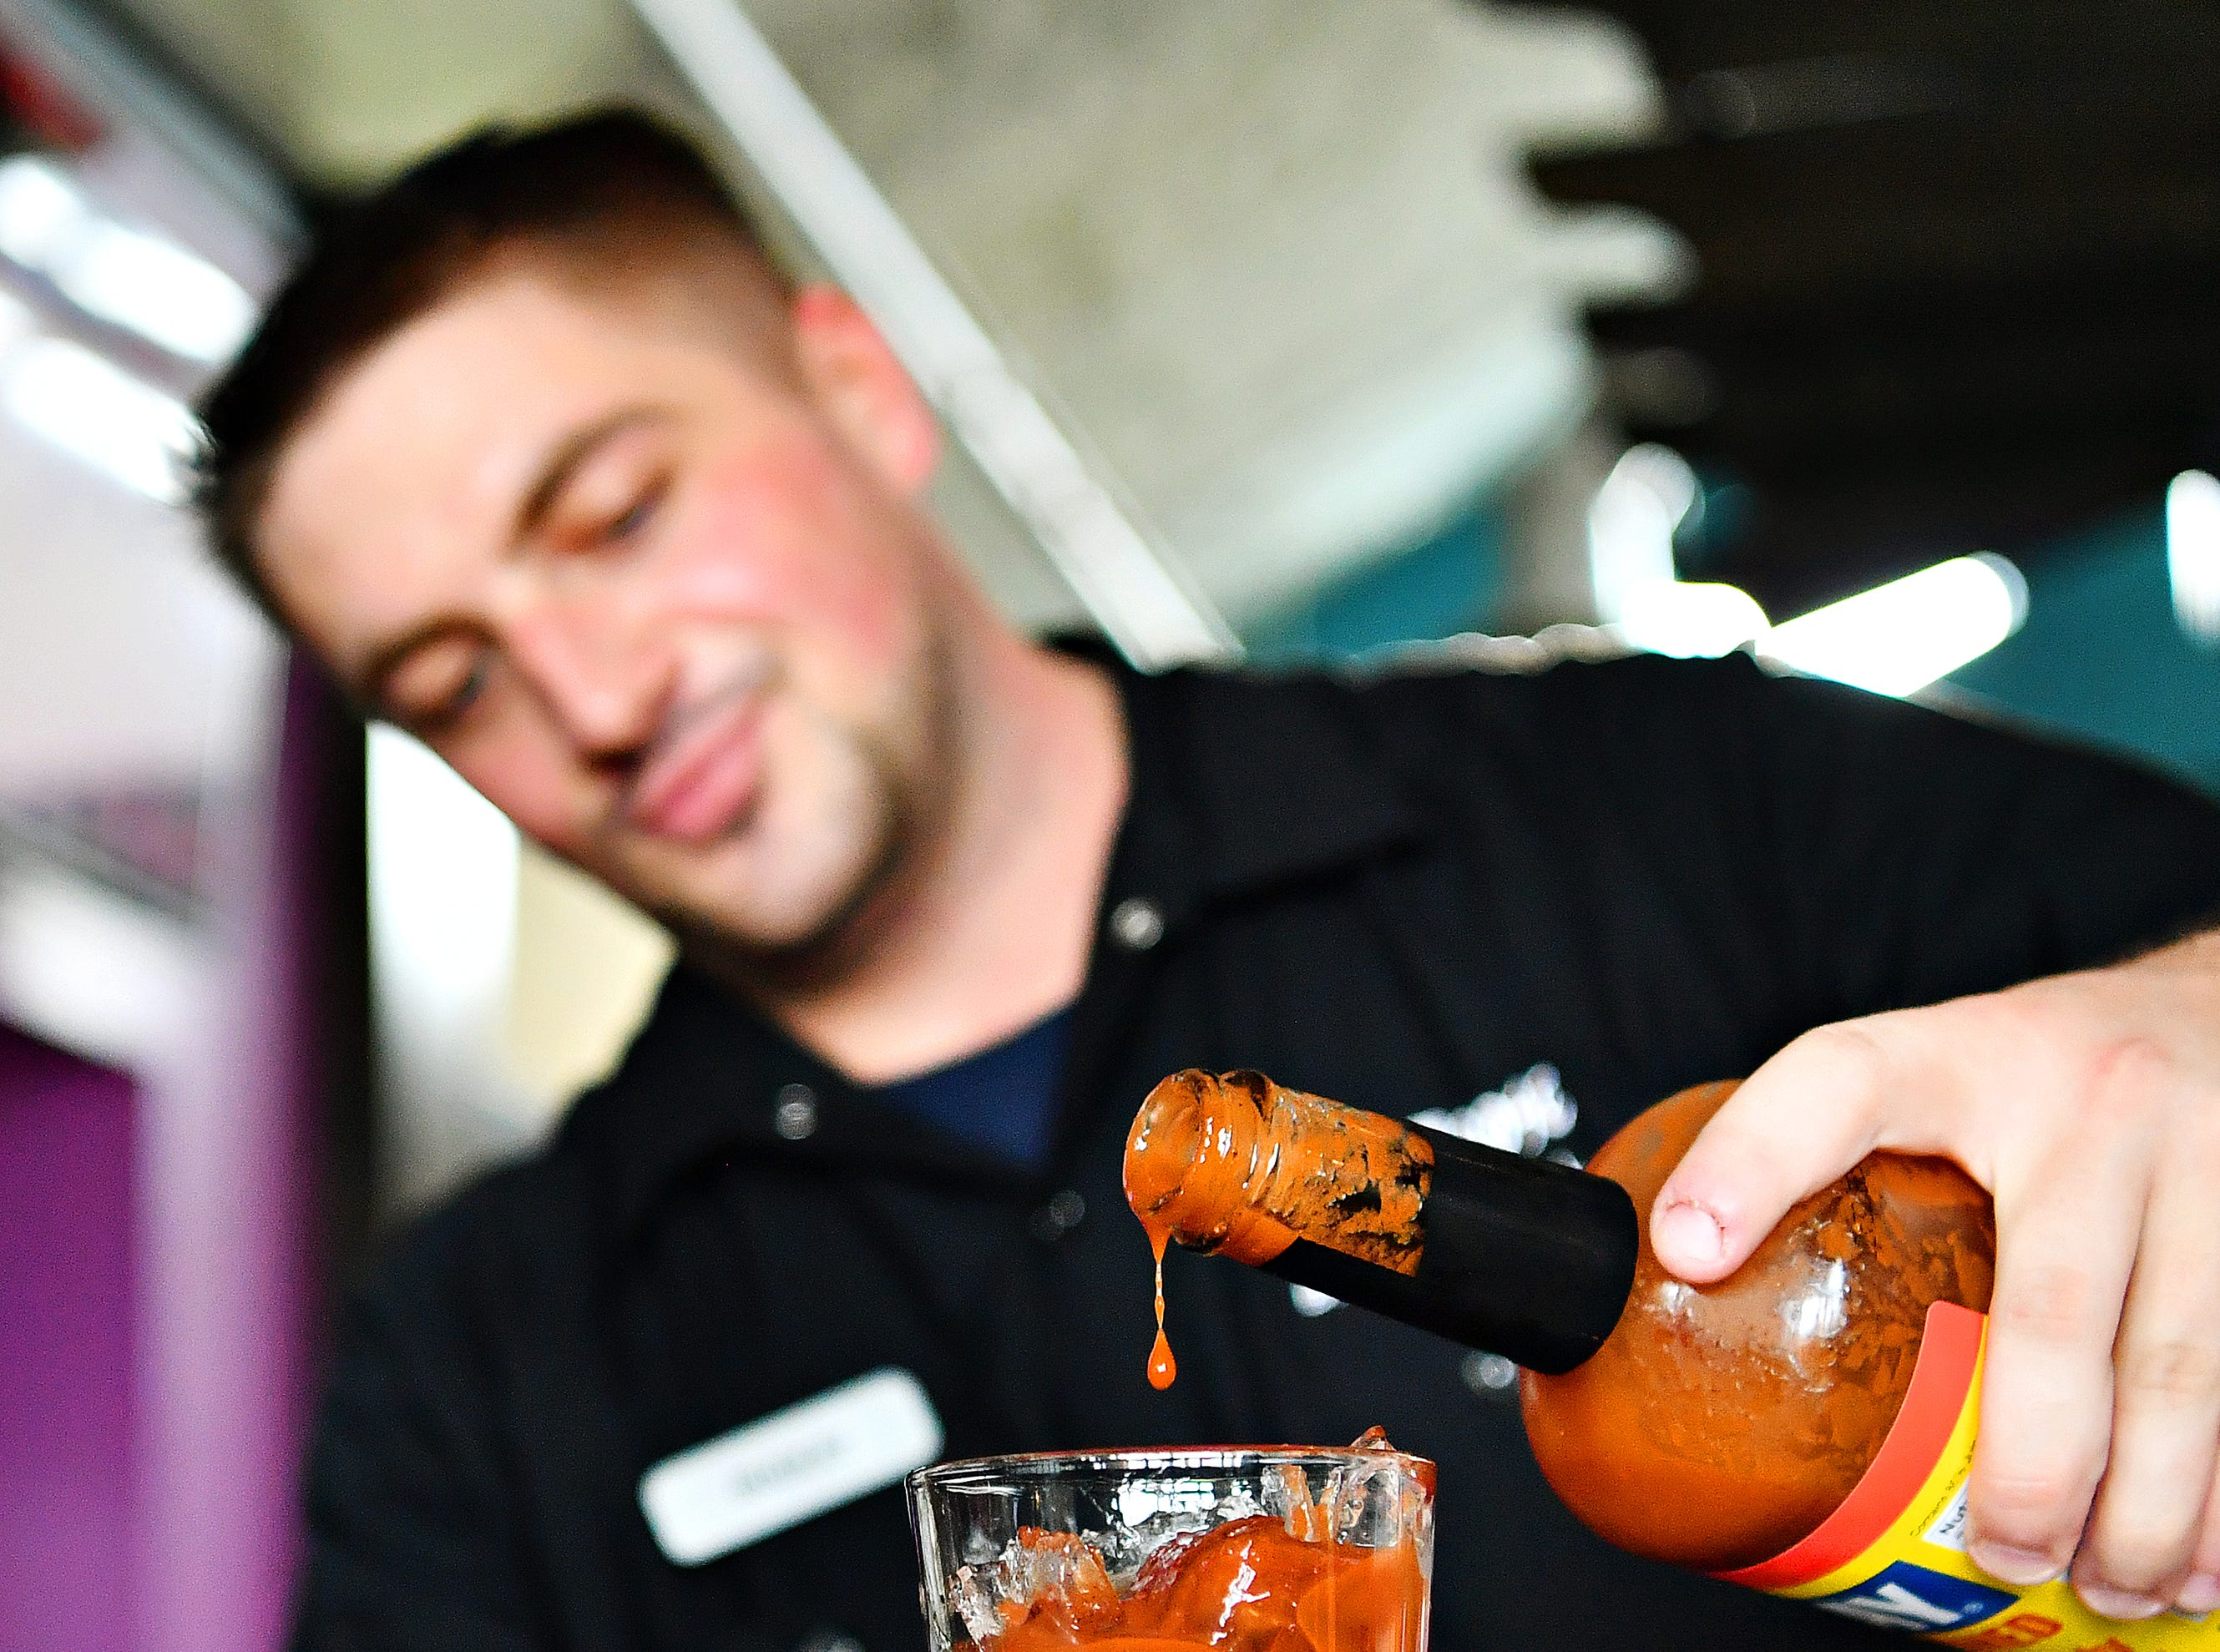 Bartender Bradley Clarkson mixes a Bloody Mary at White Rose at Bridgewater, which overlooks Bridgewater Golf Course, in York Township, Friday, April 12, 2019. Dawn J. Sagert photo